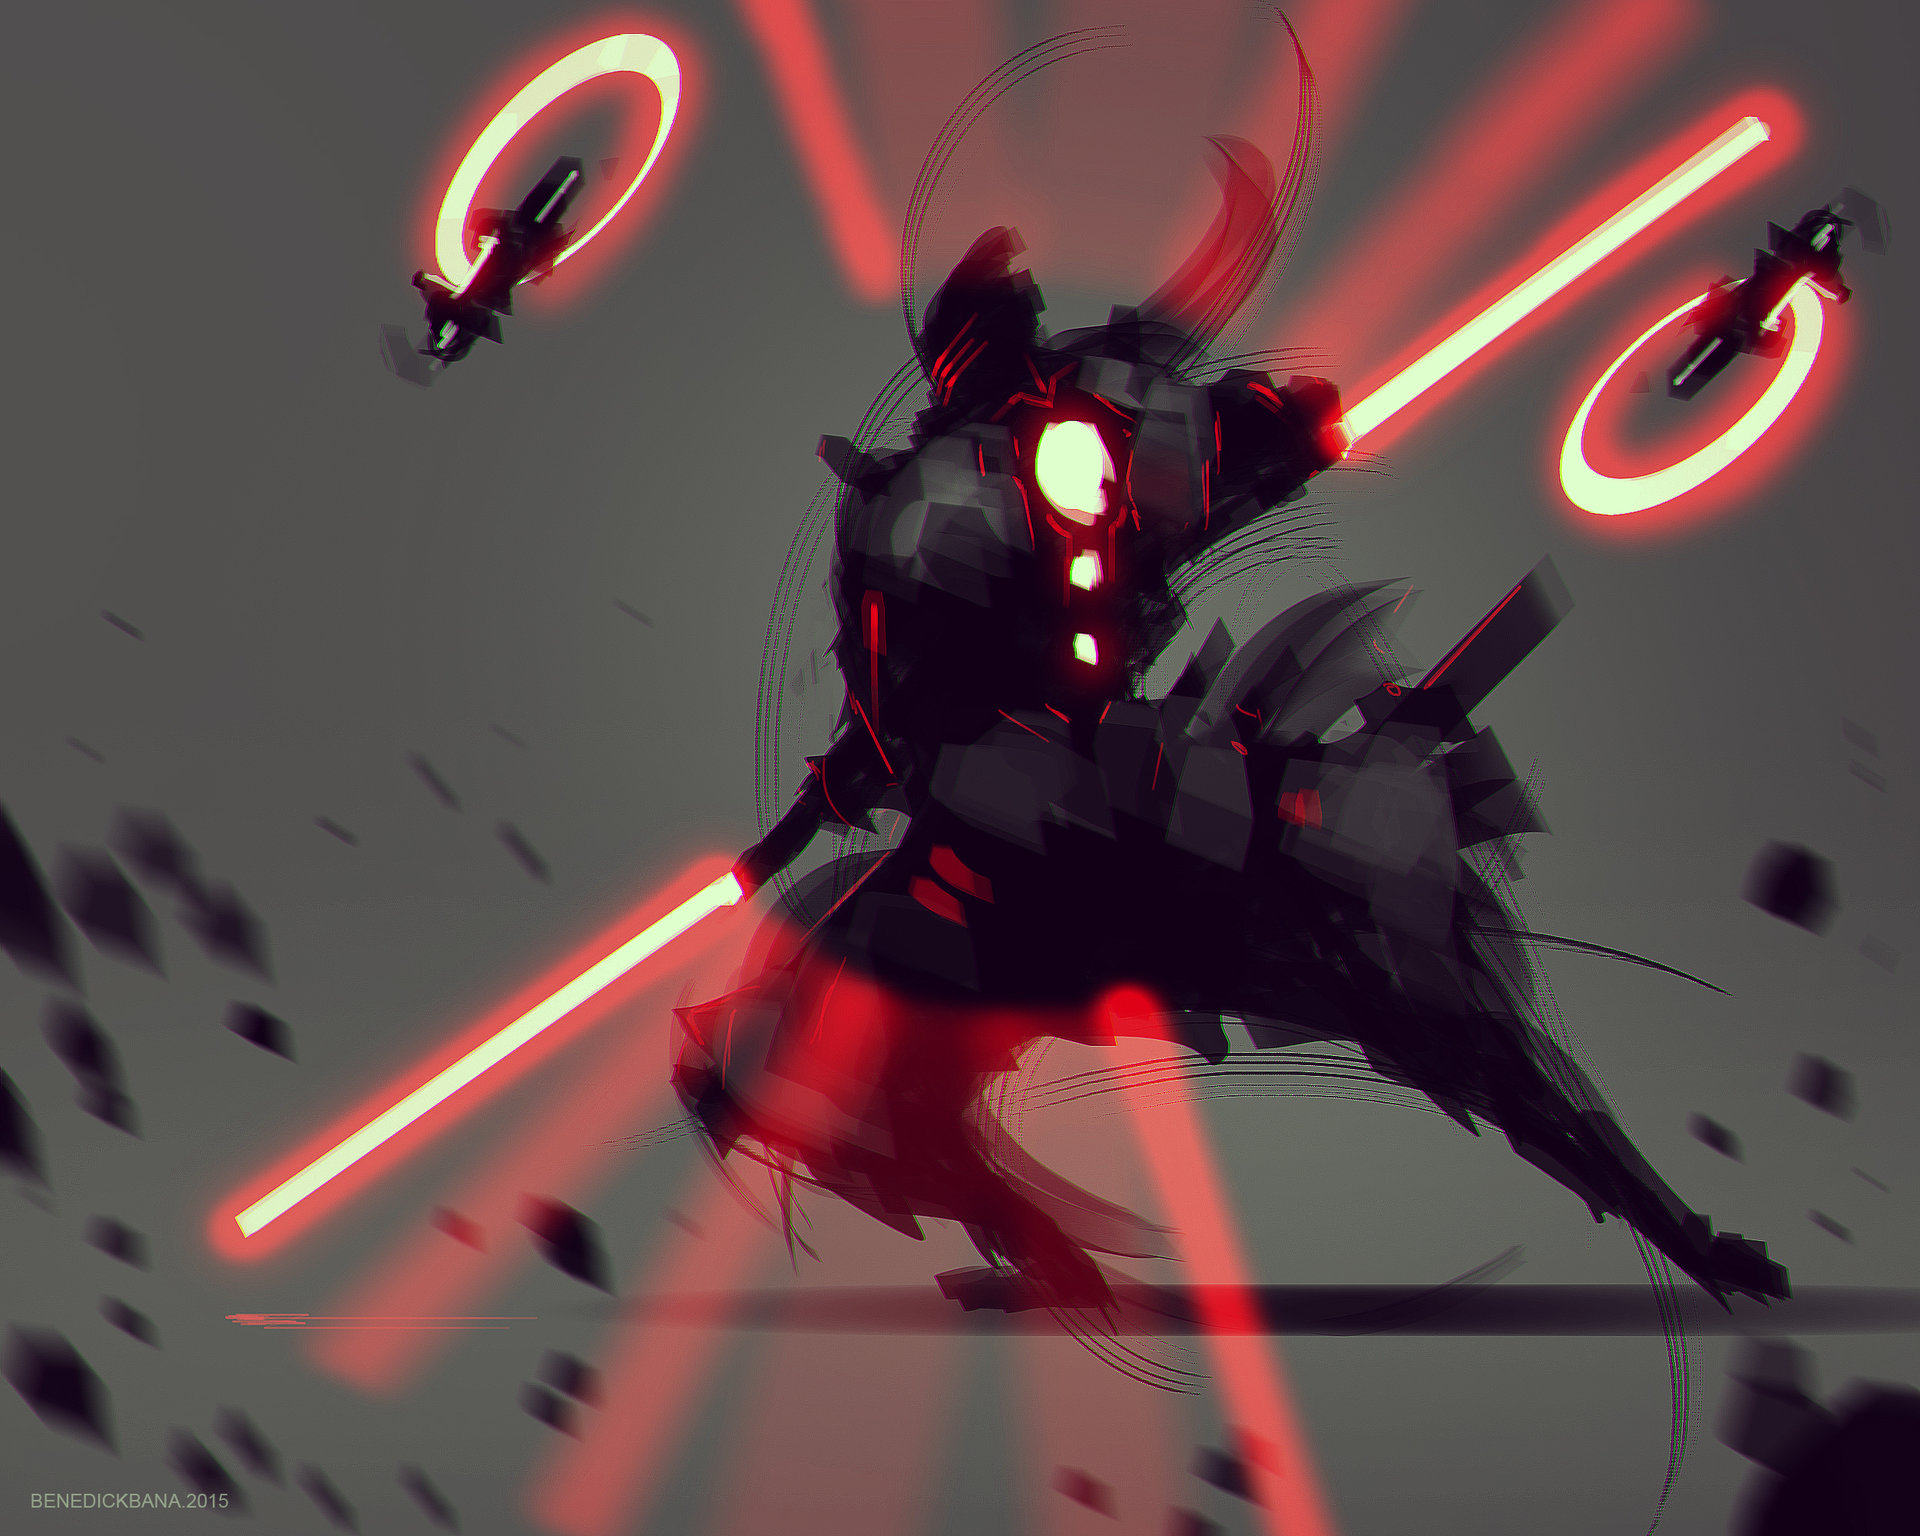 Benedick bana sith lord darth baldr